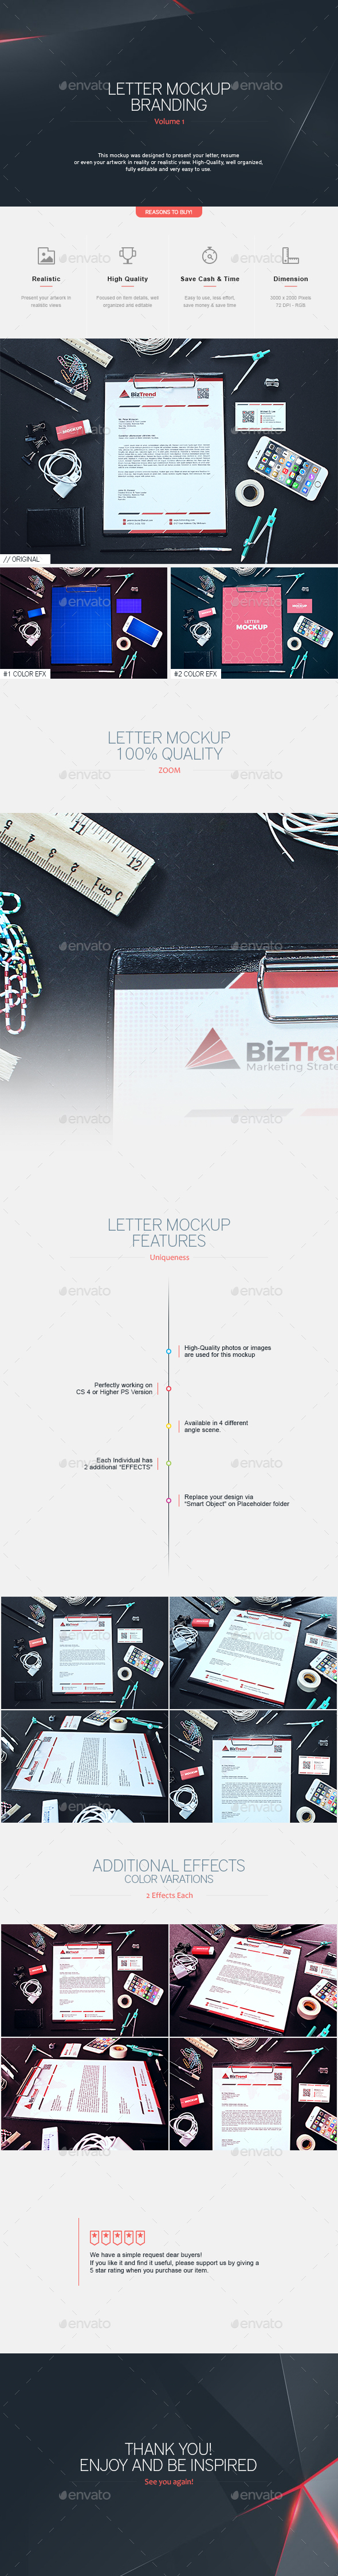 Letter Mock-up Branding V.1 - Stationery Print